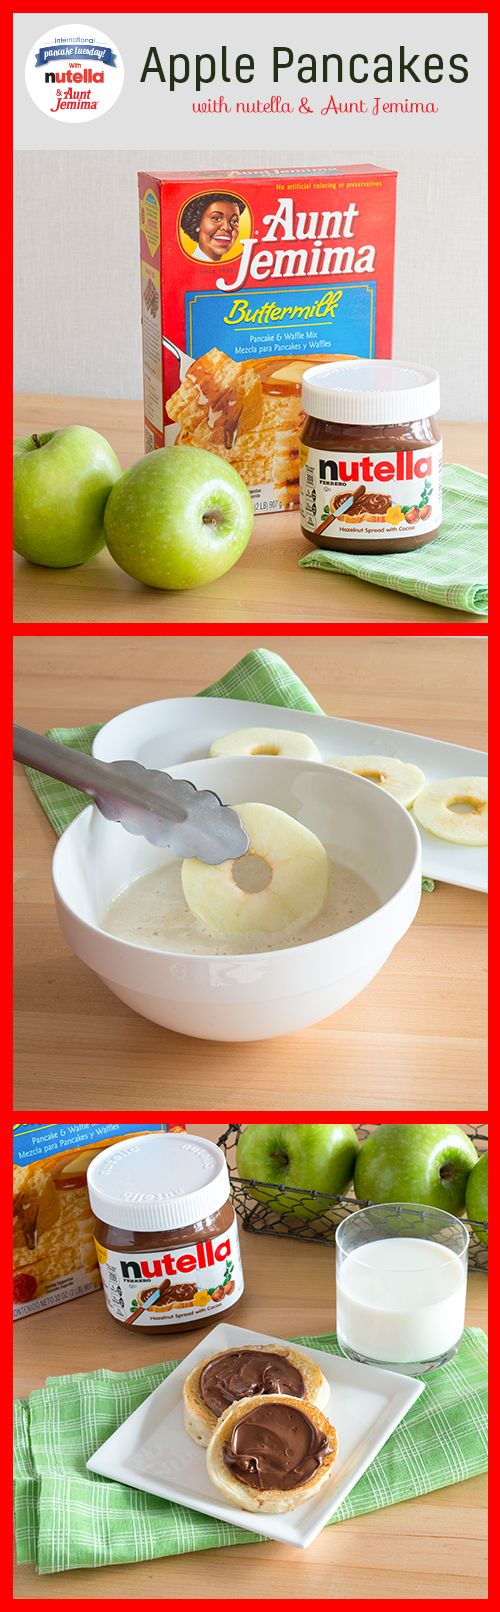 This International Pancake Tuesday, add some apple to your Aunt Jemima® batter for pancakes with punch! Cut your apple into rings then dip them into your pancake mix. Grease your pan and place your battered apple slice on your griddle. Flip when bubbles begin to form, about two minutes. Cook for another minute and plate. Serve with a spread of Nutella®.